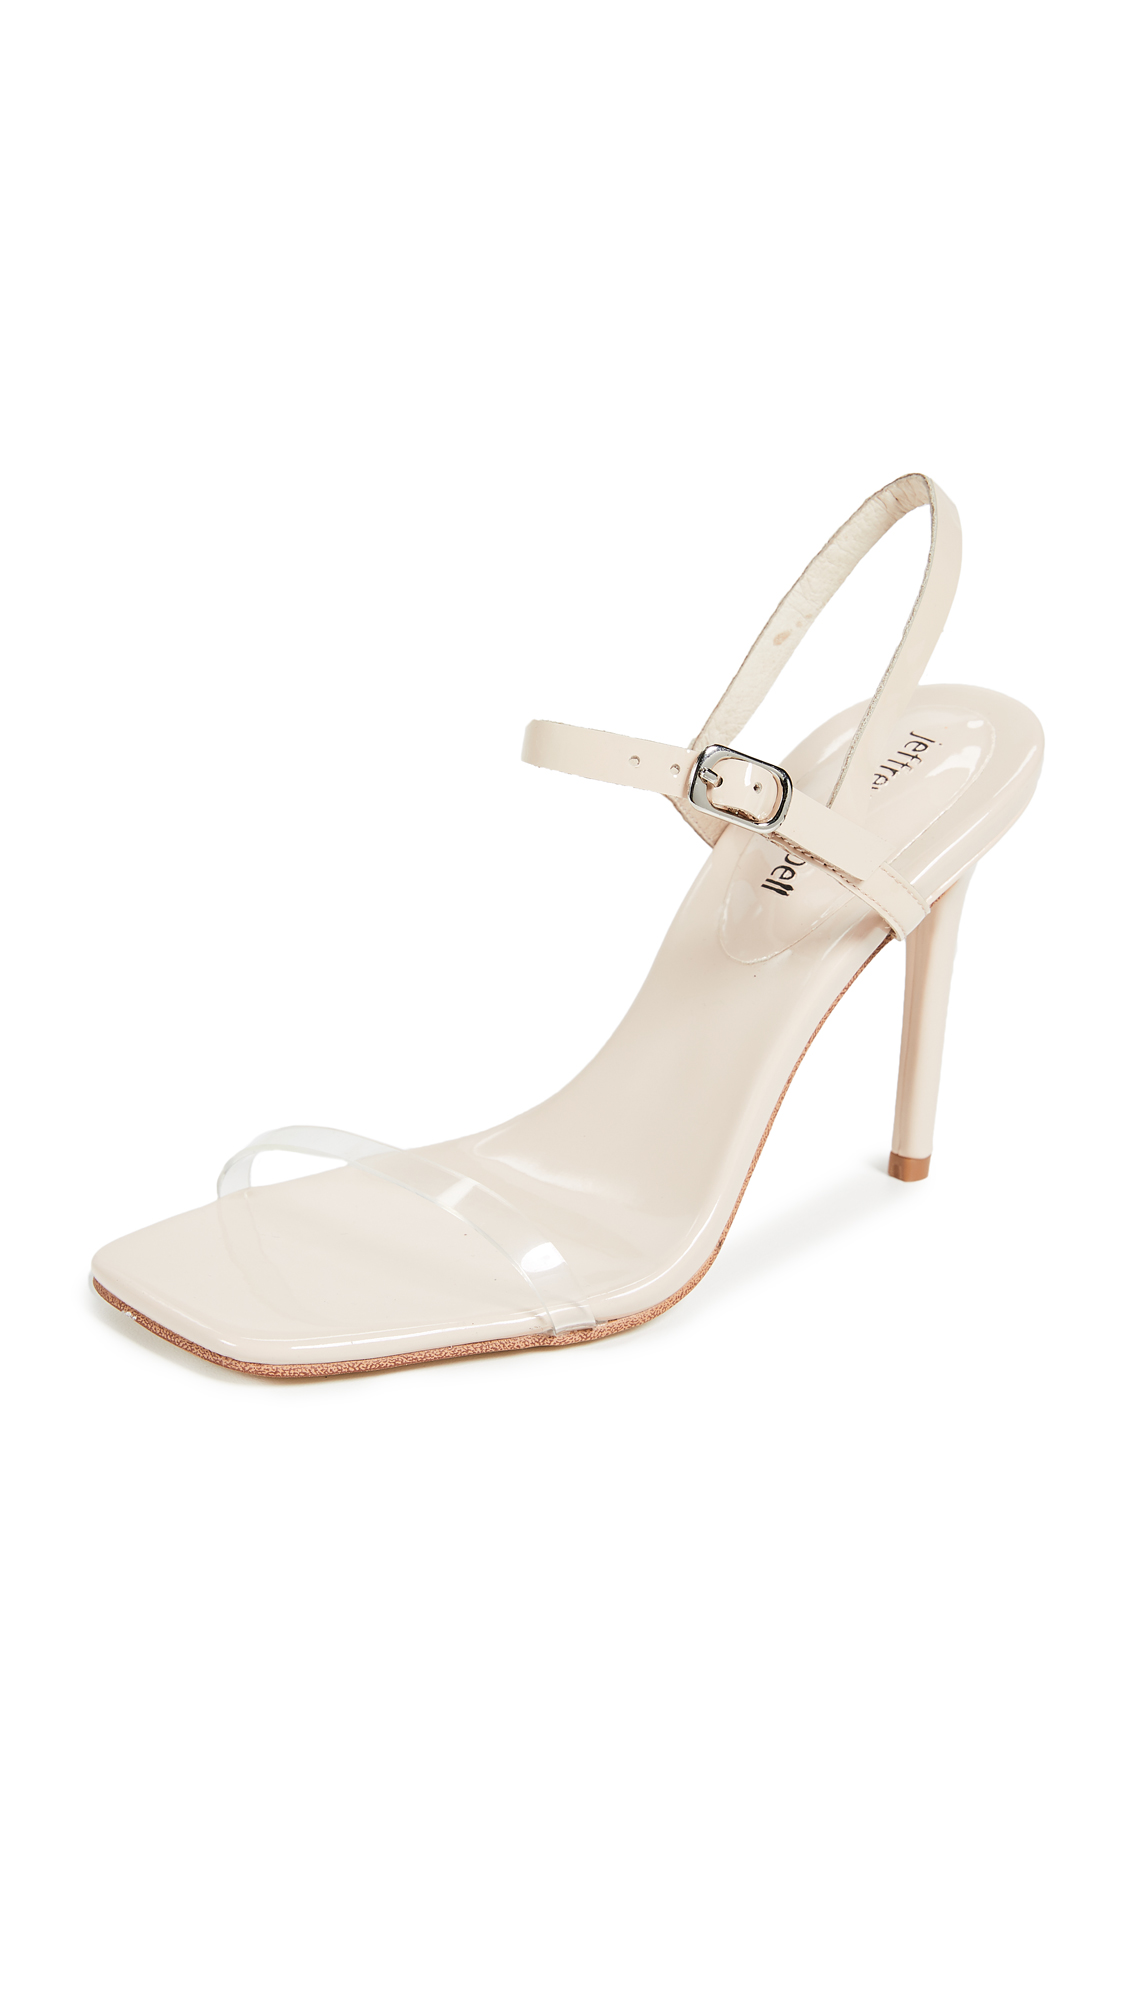 Jeffrey Campbell Get Busy Strappy Sandals - Nude/Clear